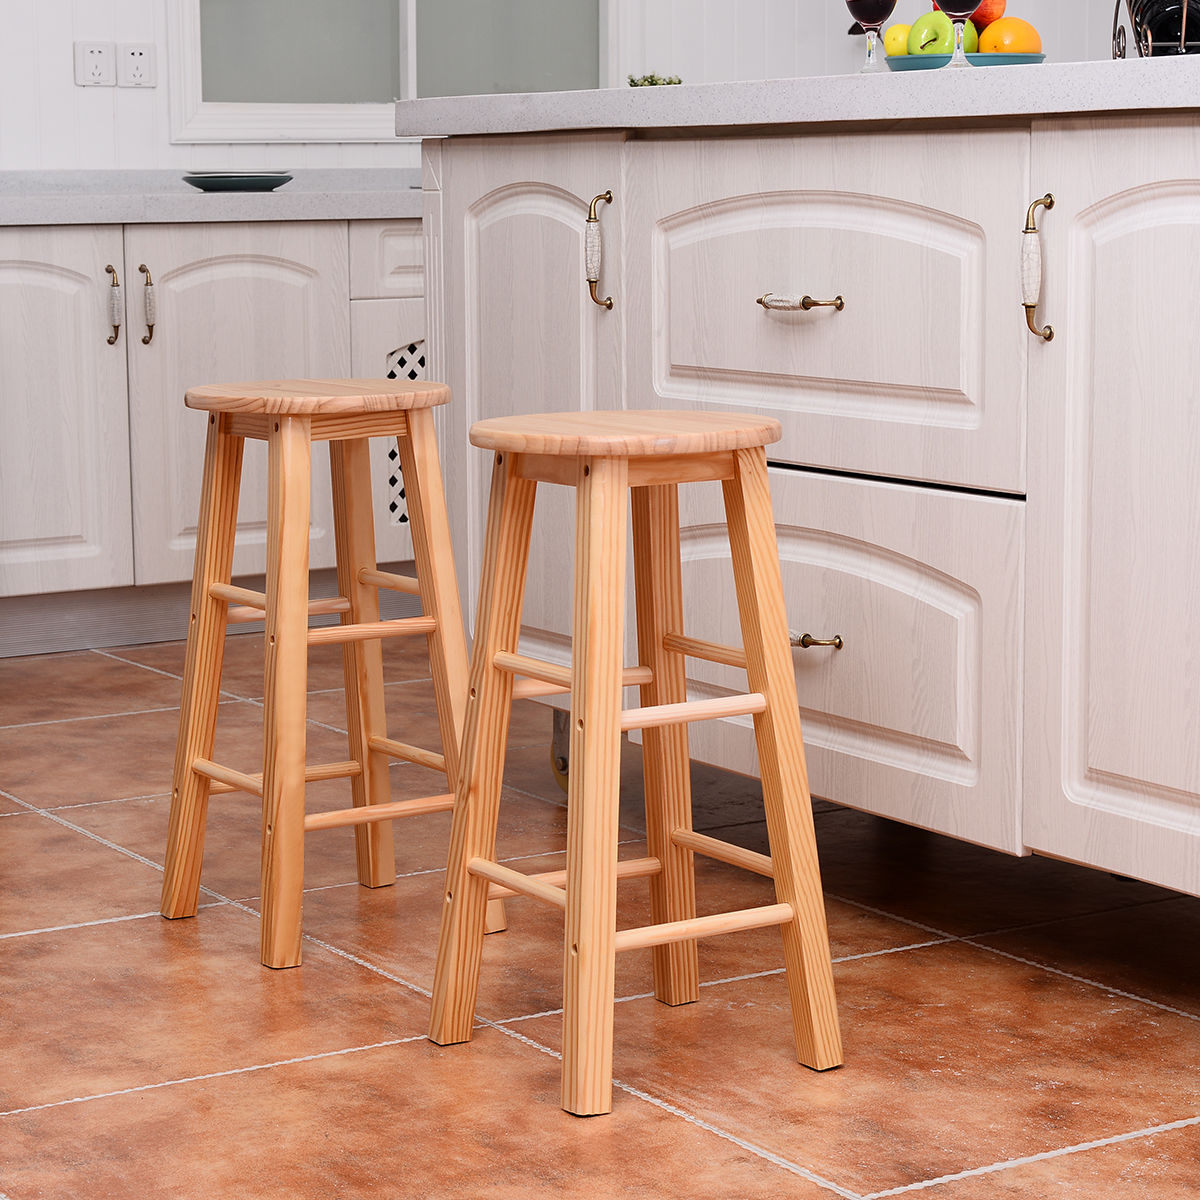 Set Of 2 Wood Counter Stools Bar Stools Dining Kitchen Round Seat Chair 24 Inch Ebay